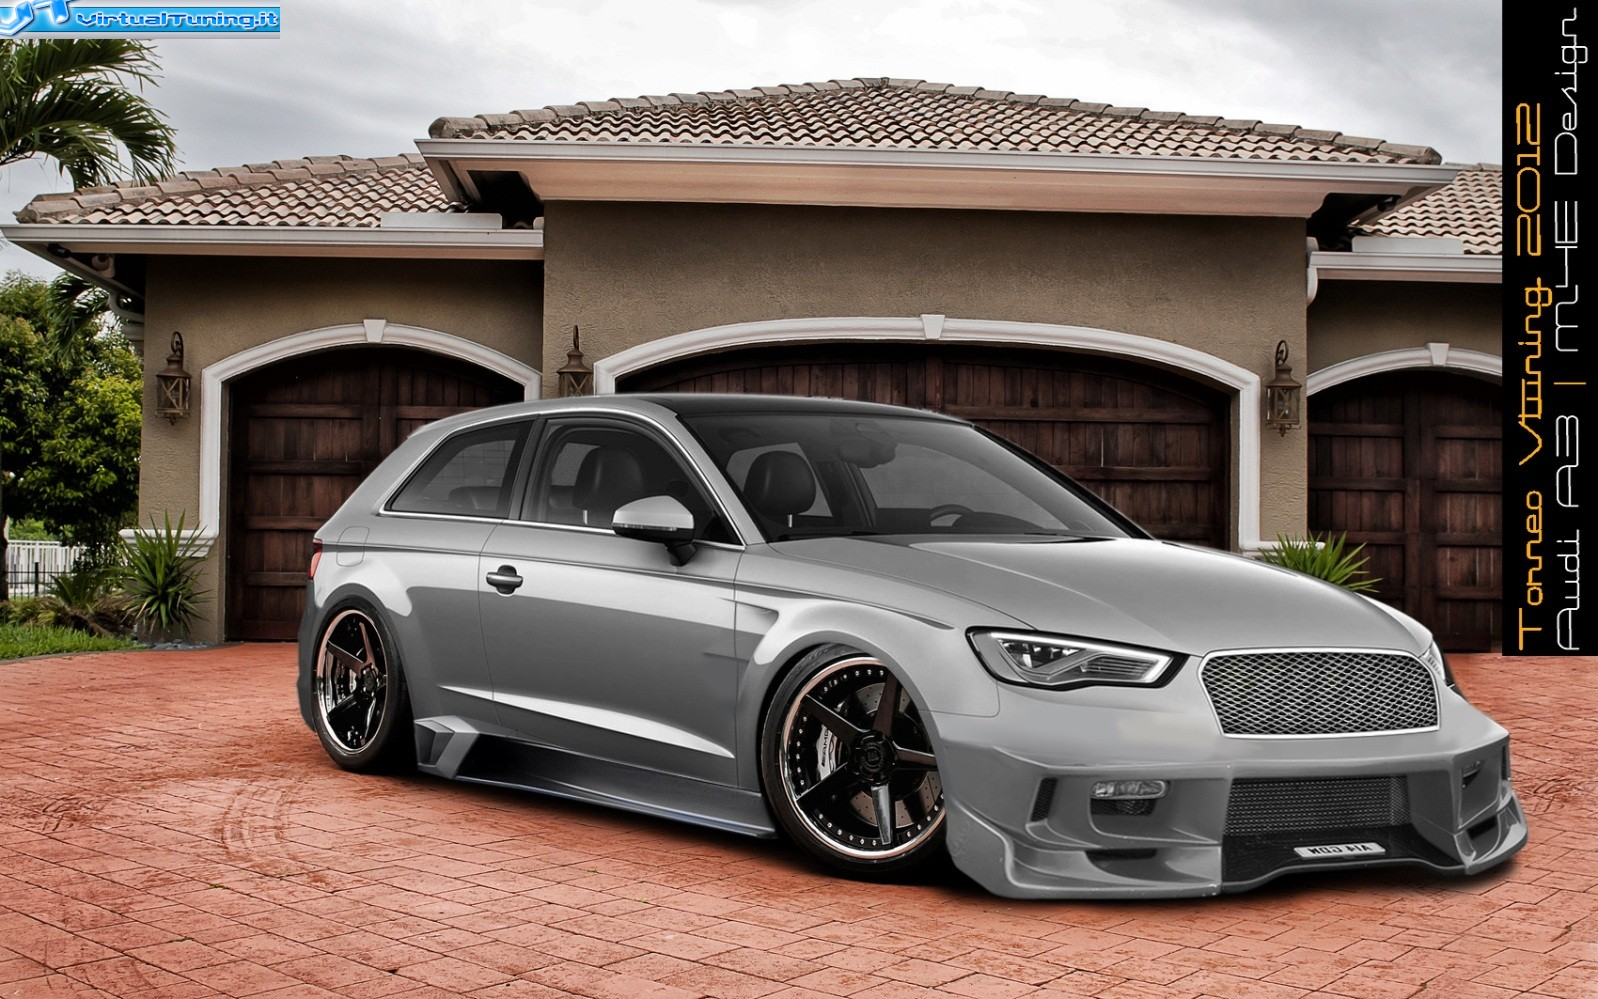 VirtualTuning AUDI A3 by mustang 4 ever